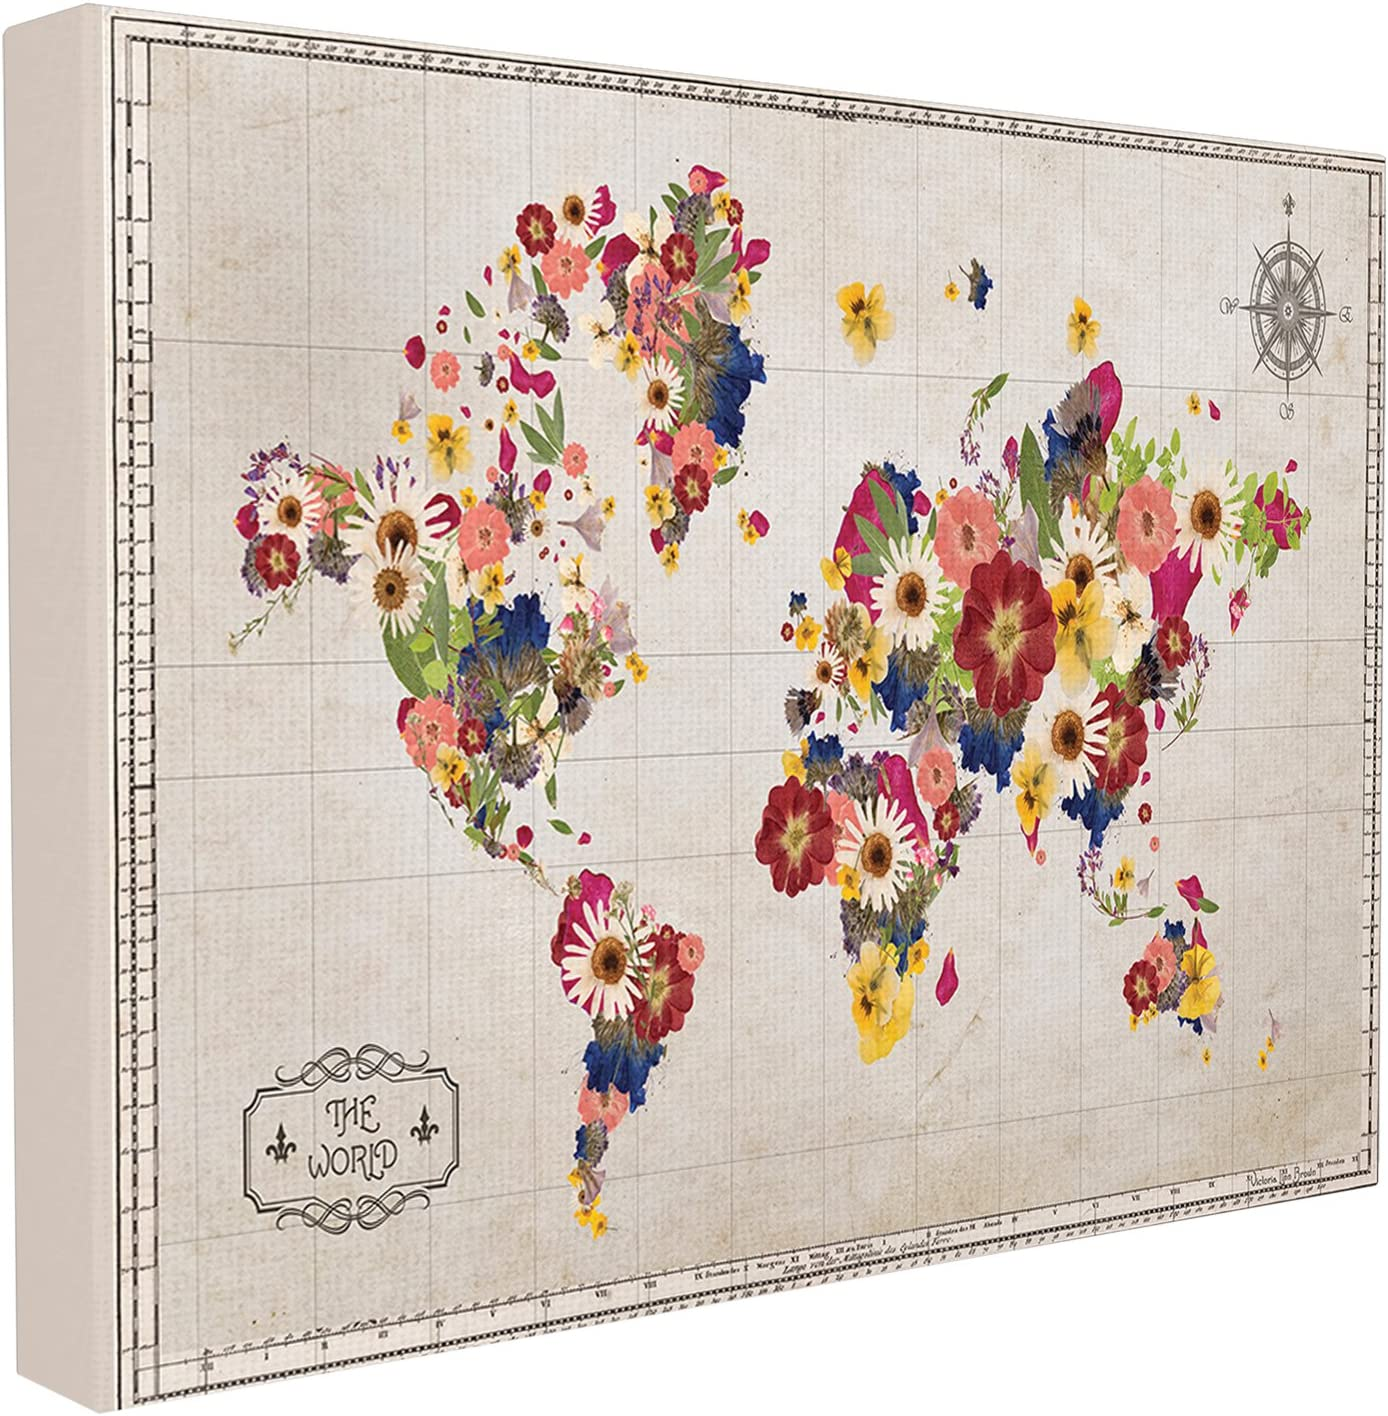 The Stupell Home Decor Collection Floral World Map Graphic Art 16 x 20 Canvas